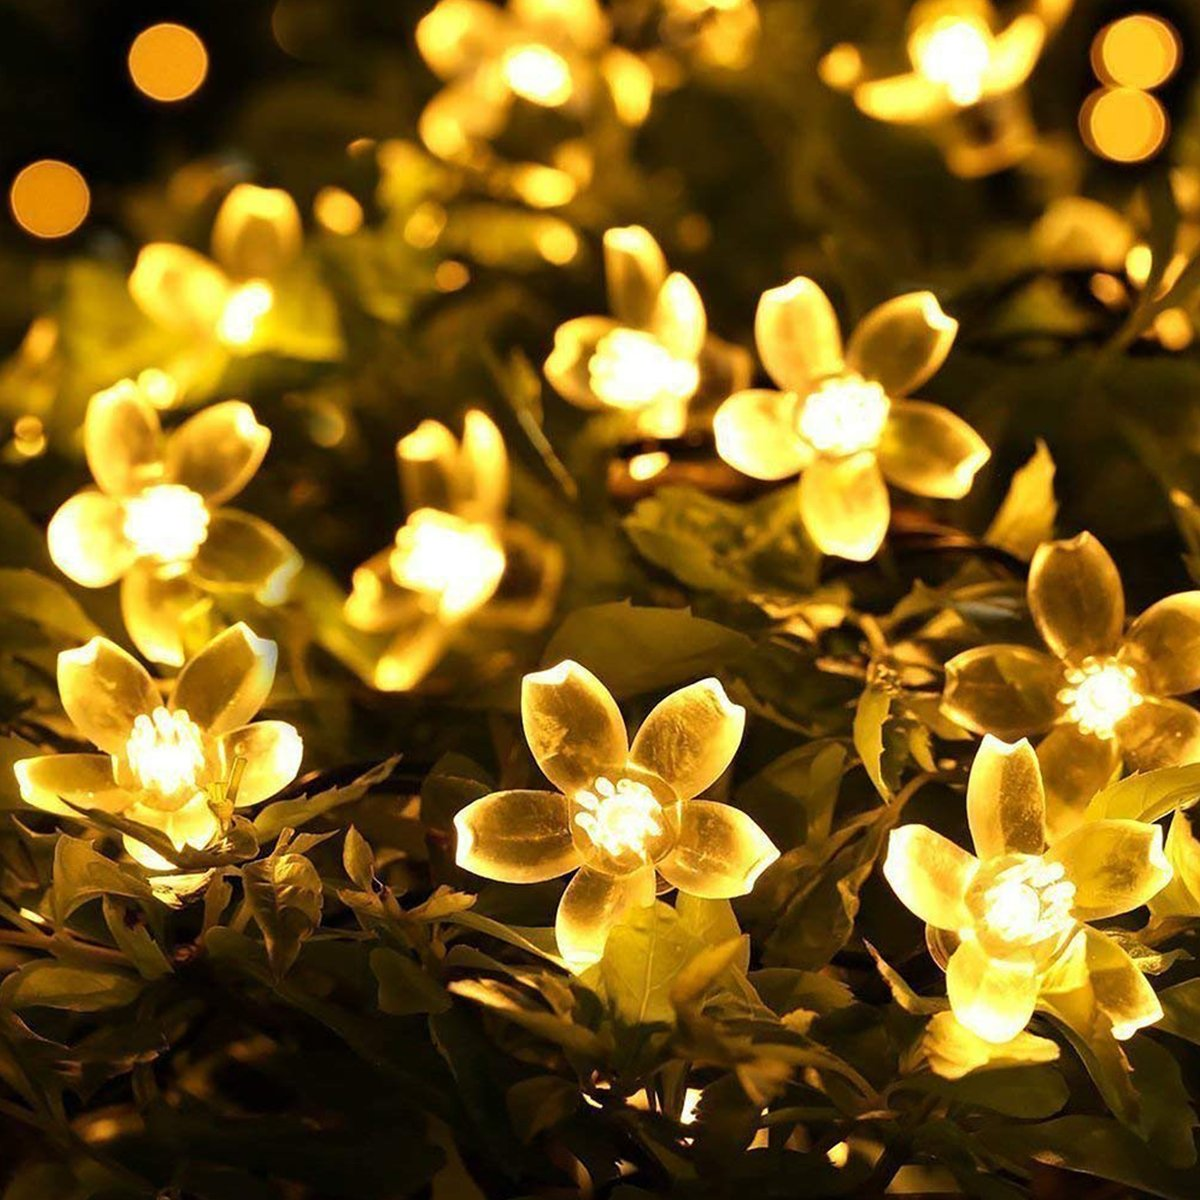 Lights Battery Operated String Lights Flower Led Fairy Light Outdoor Led Battery Garden Lights for Outdoor, Home, Lawn, Wedding, Patio, Party and Holiday Decorations 4 Modes 80 LED